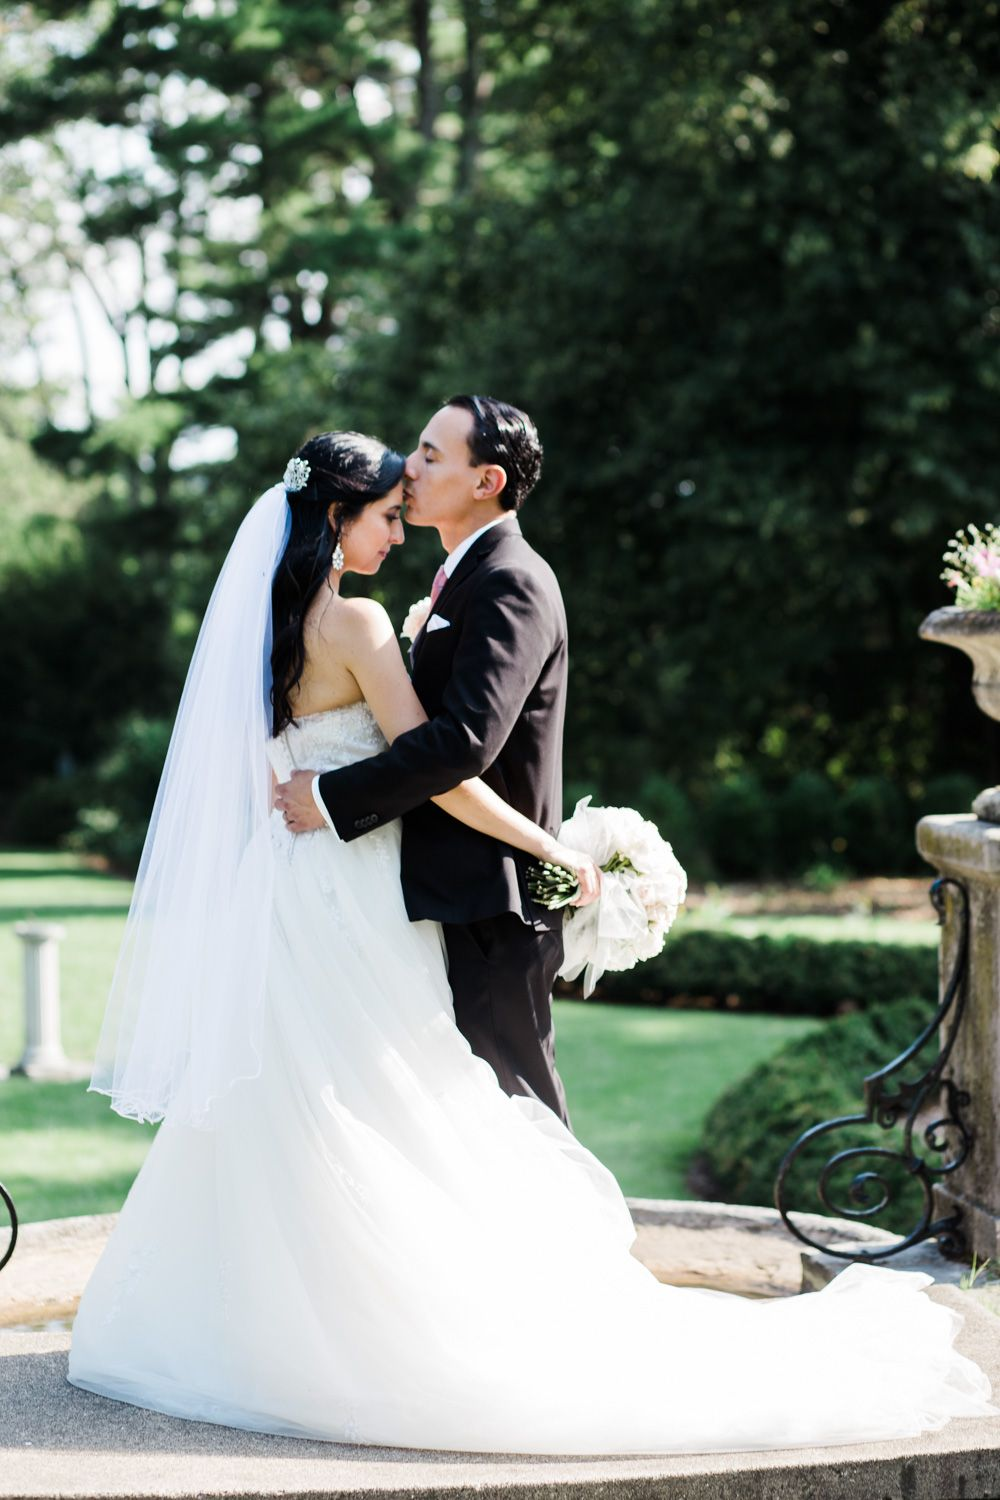 Bride and groom share a quiet moment at the New Jersey Botanical Garden